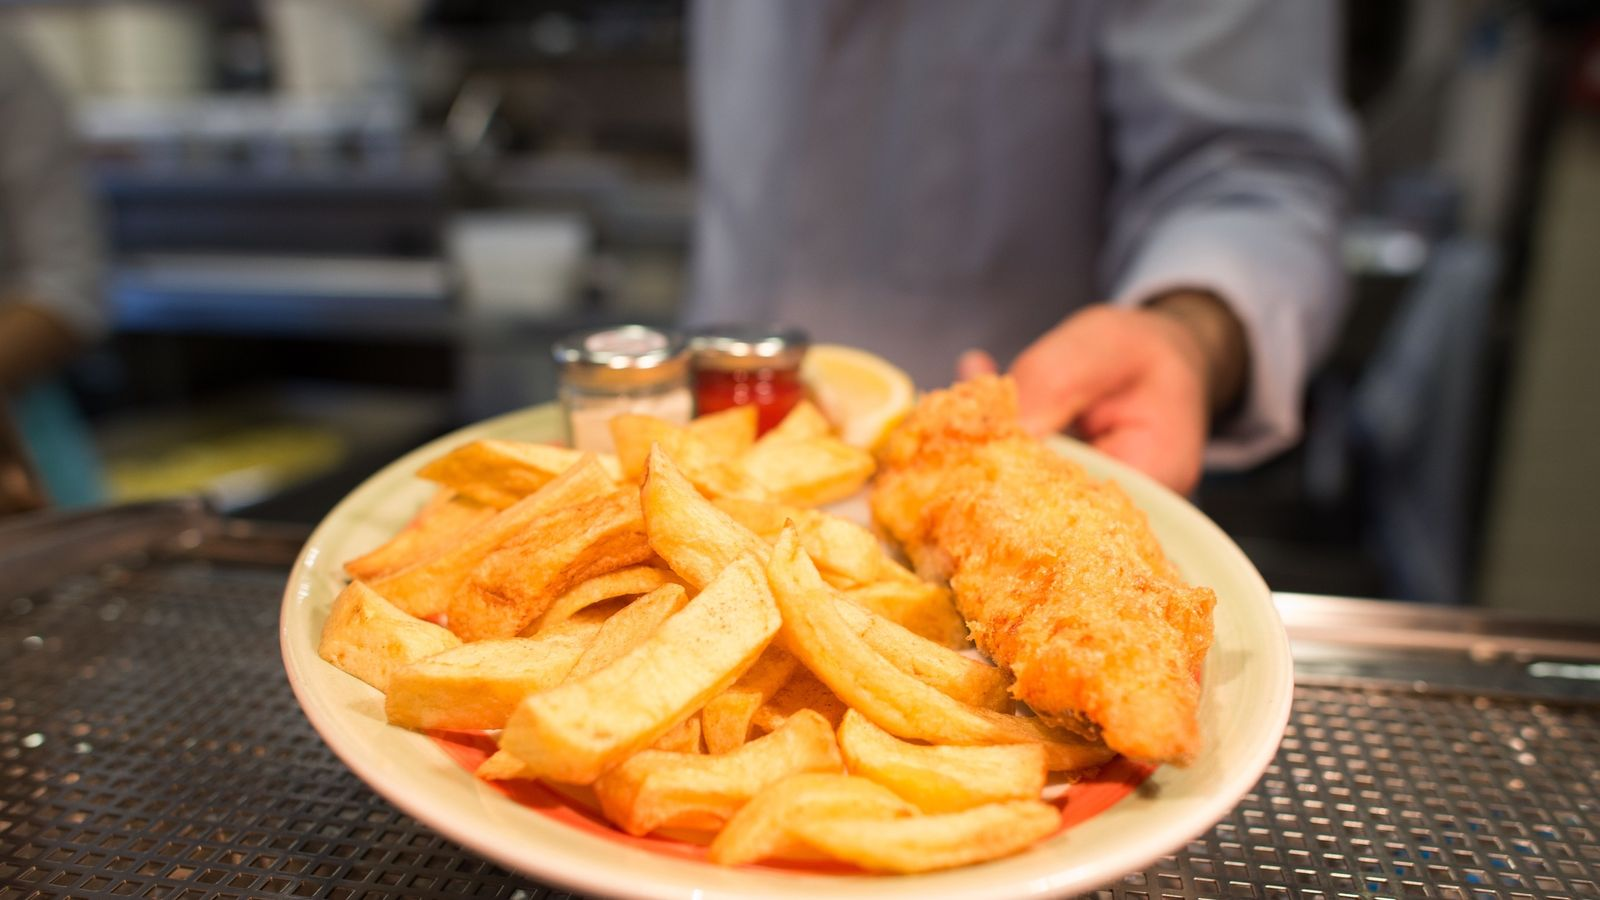 A chef poses with a plate of fish and chips at Poppies fish and chip restaurant in east London on January 26, 2015. Fish and chips, that a classic British dish, is a popular takeaway food in the UK with local media reporting that somewhere in the region of 250 million portions are served up annually